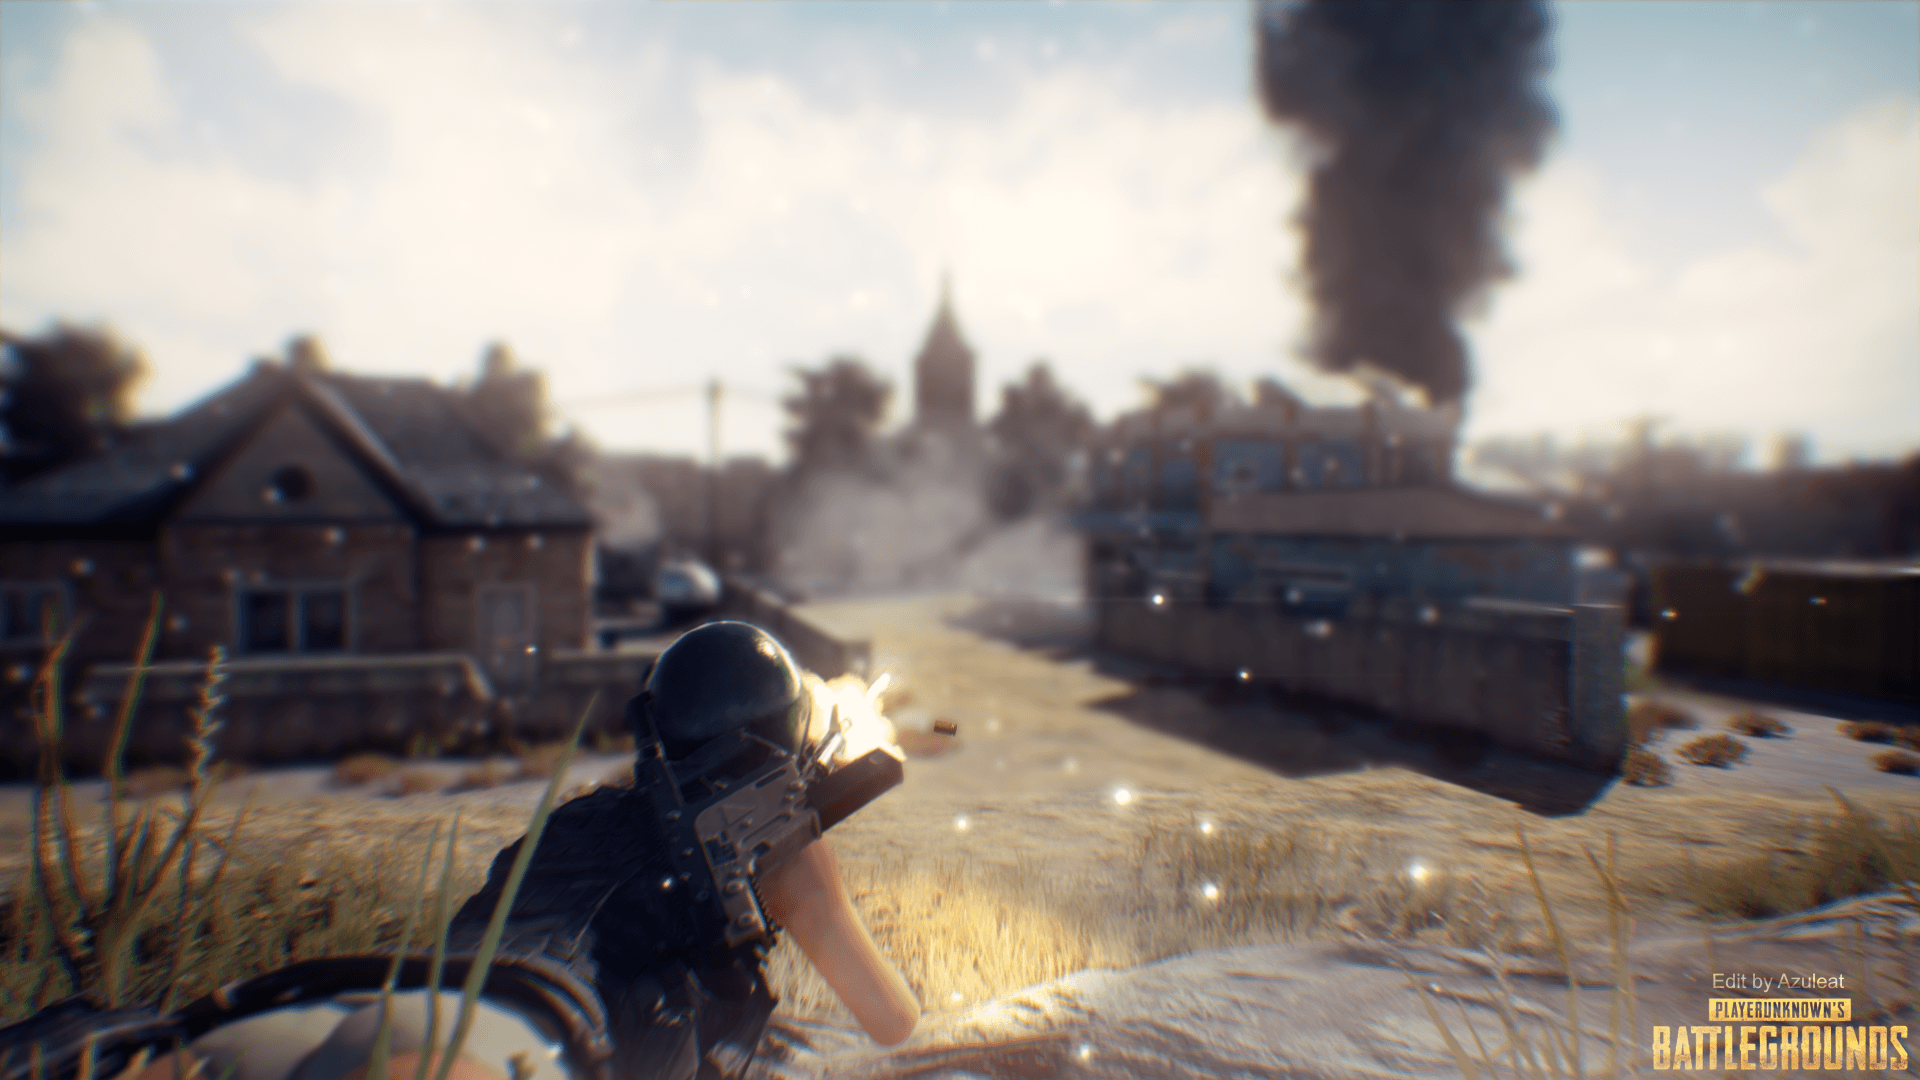 Pubg Wallpaper Phone: Pubg Hd Wallpaper For Pc Download